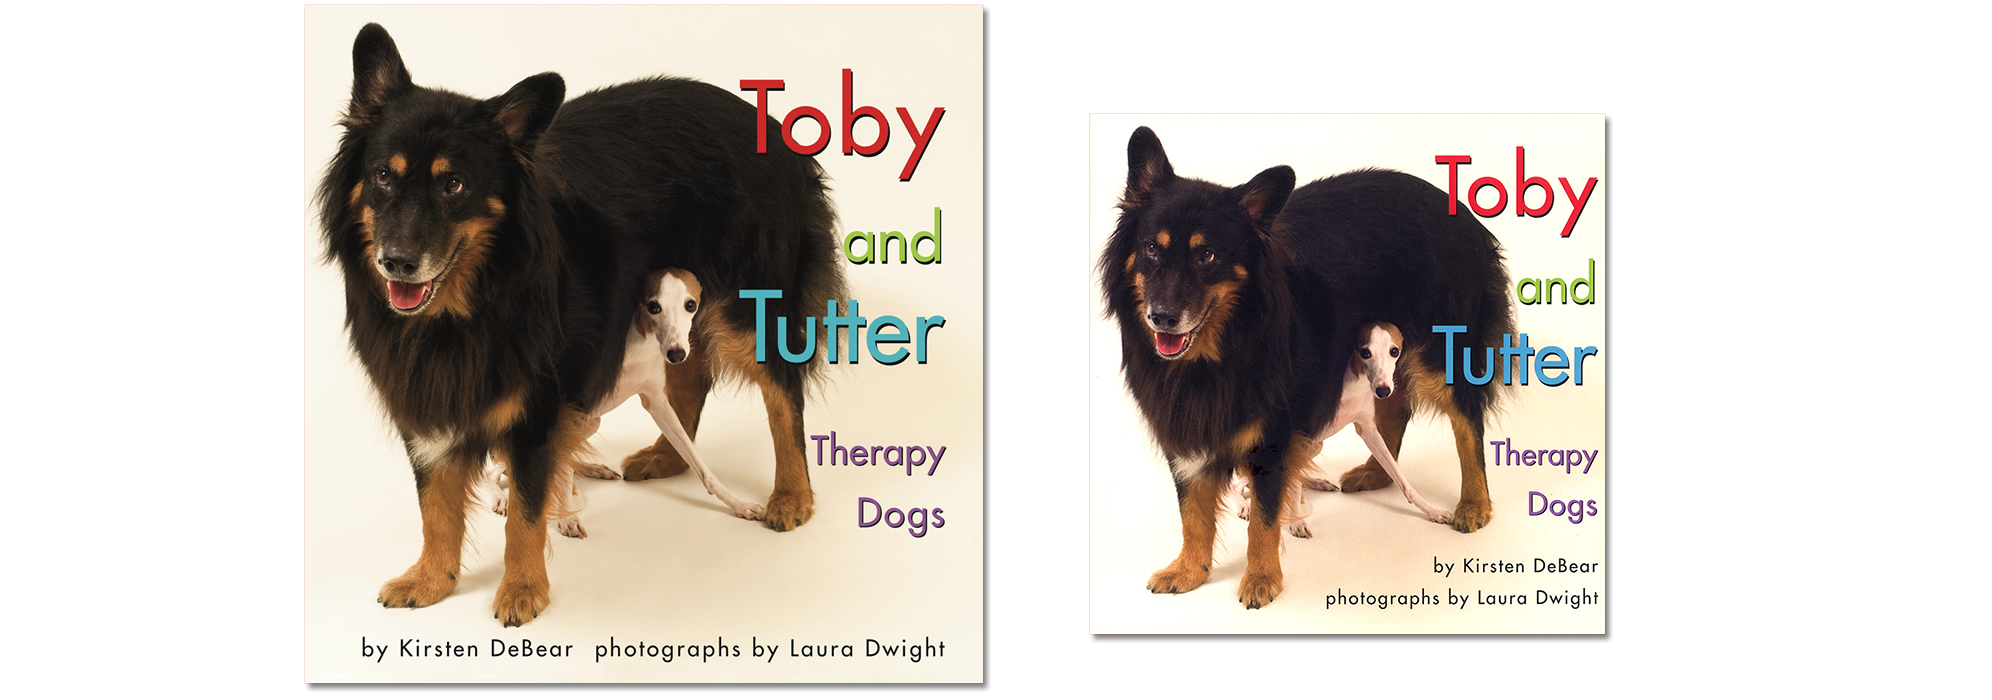 Buy the Toby and Tutter book - in hardcover or paperback